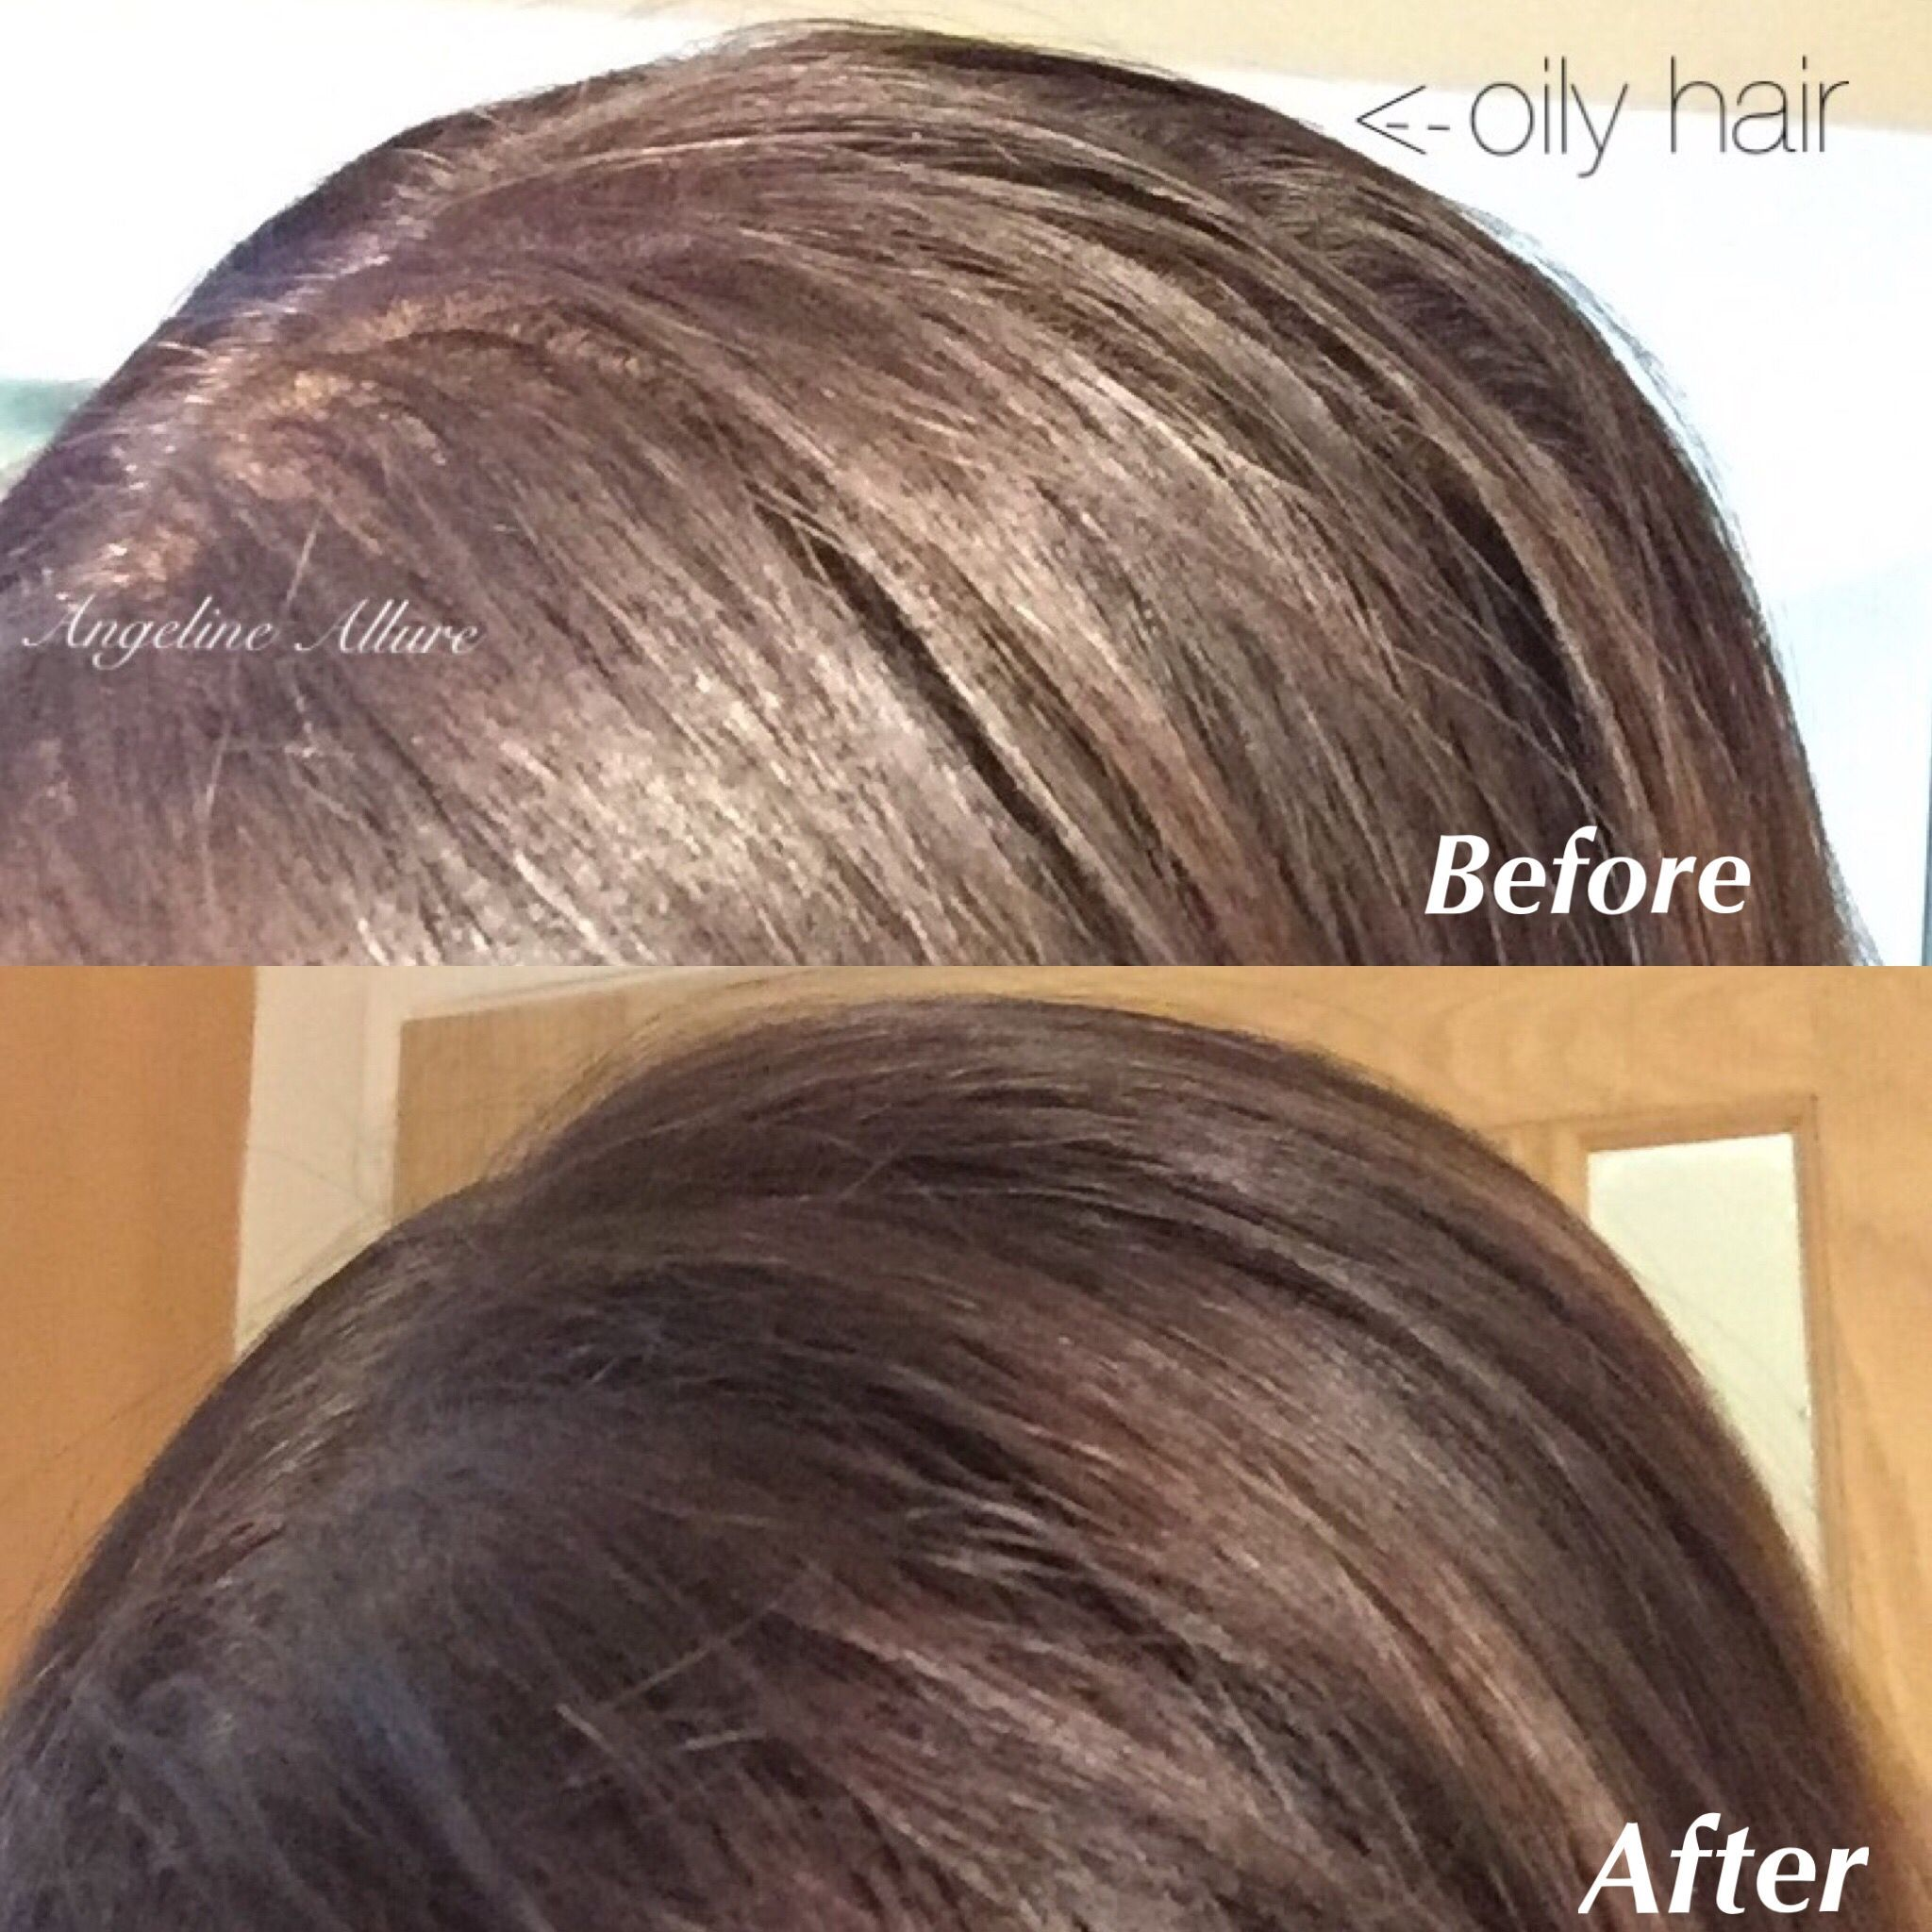 Batiste Dry Shampoo To The Rescue Say Bye Bye To Oily Roots Hair Checkout My Blog For Full Product Review Link In Bio Www An Roots Hair Bio Oil Skin Hair